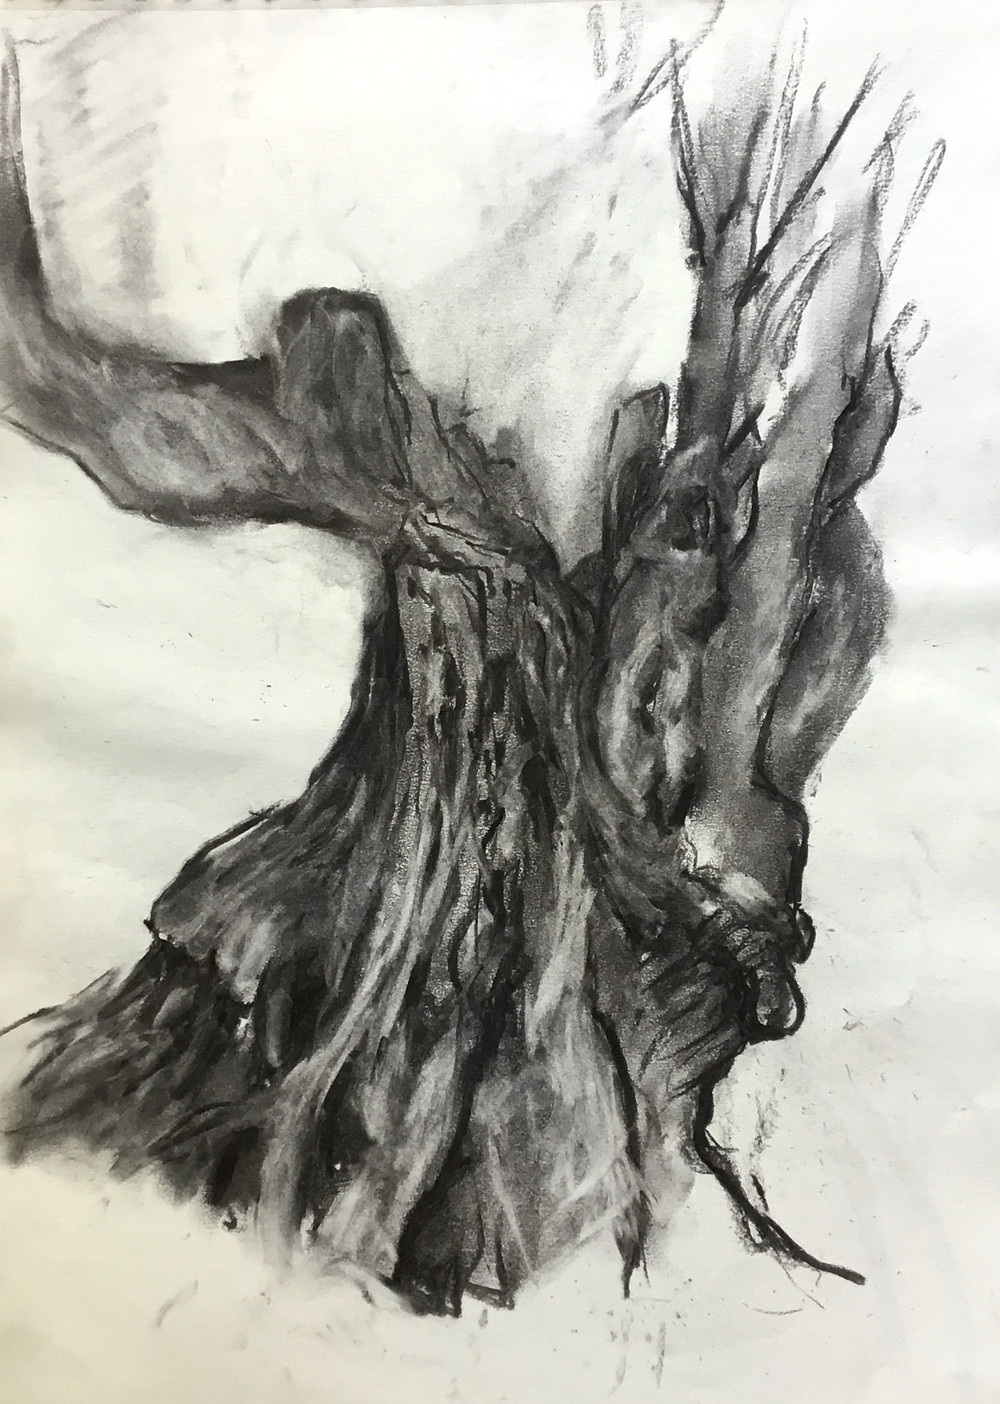 Charcoal drawing in black and white of ancient olive tree, with twisted branches full of hollows, pitted with textures and bulging with knots.